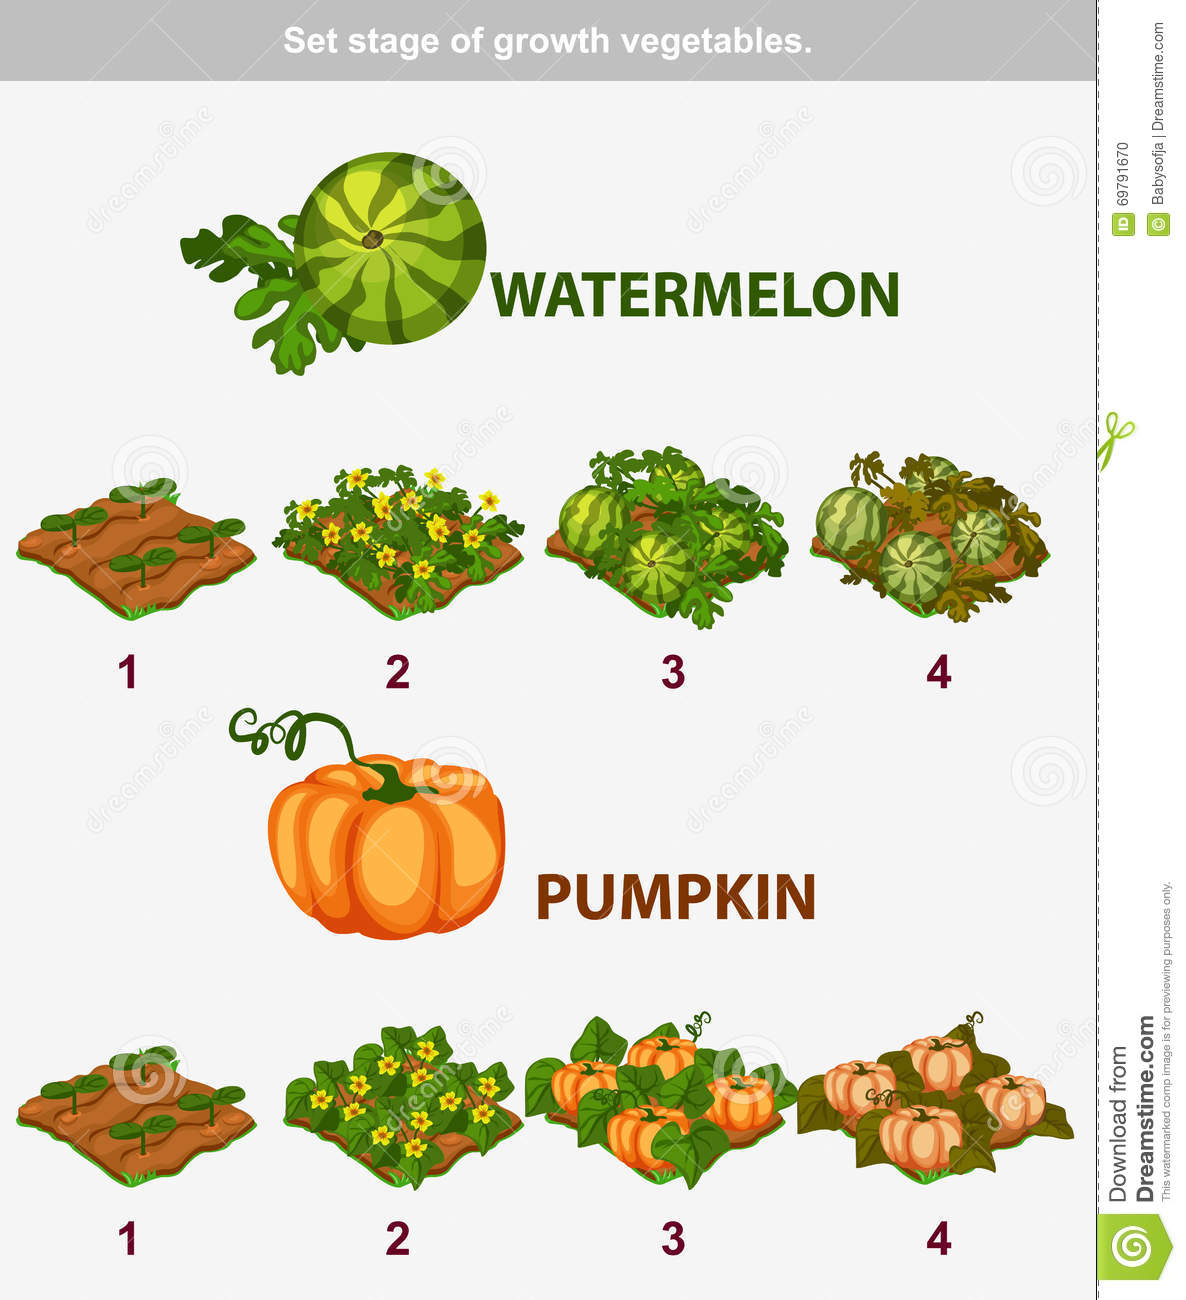 Stage Of Growth Vegetables Watermelon And Pumpkin Stock